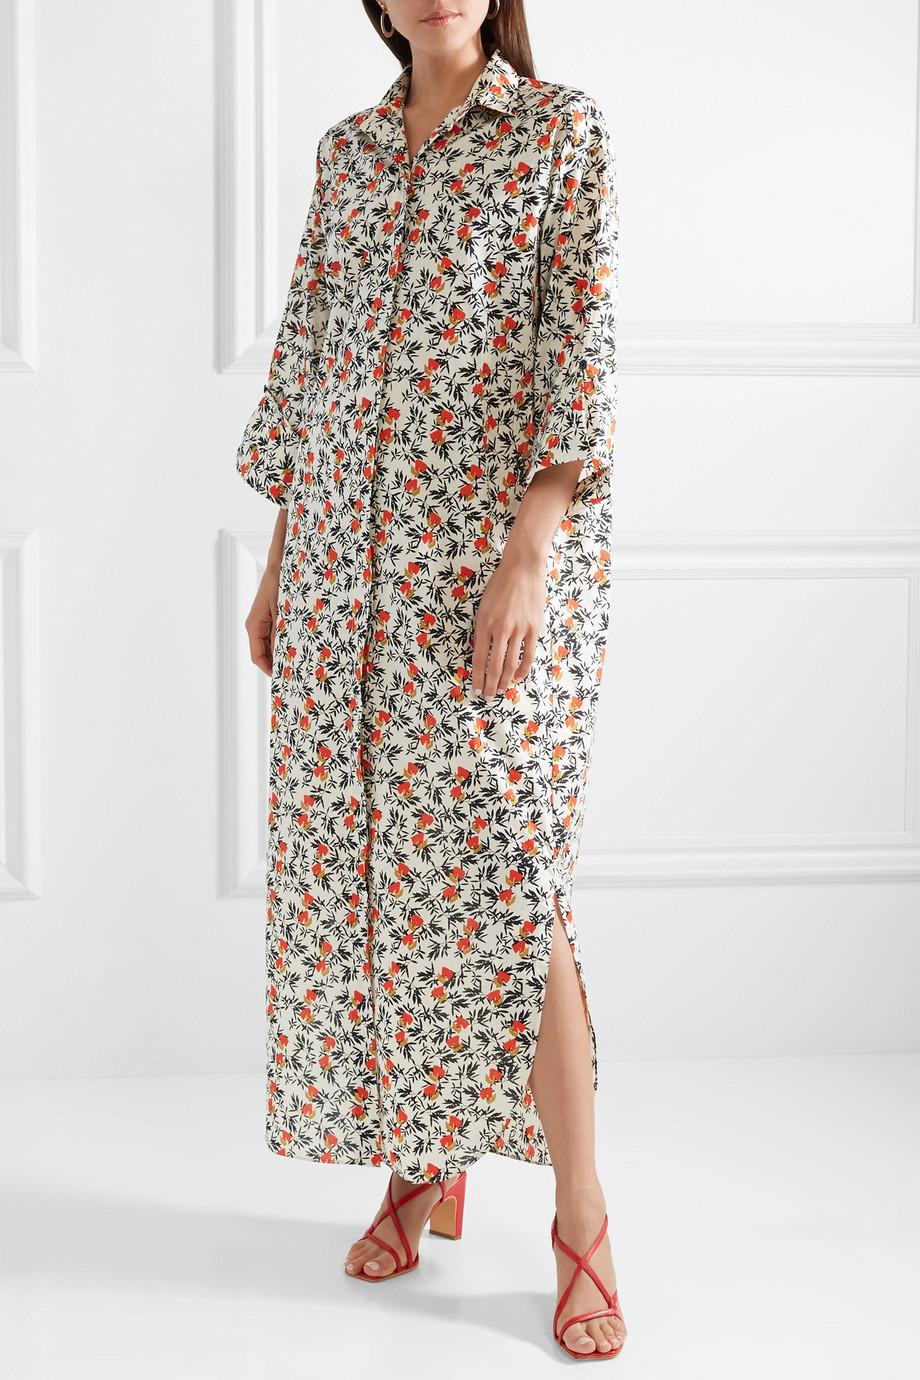 Sultry Floral-print Cotton Maxi Dress - Cream By Malene Birger lWJ7f2